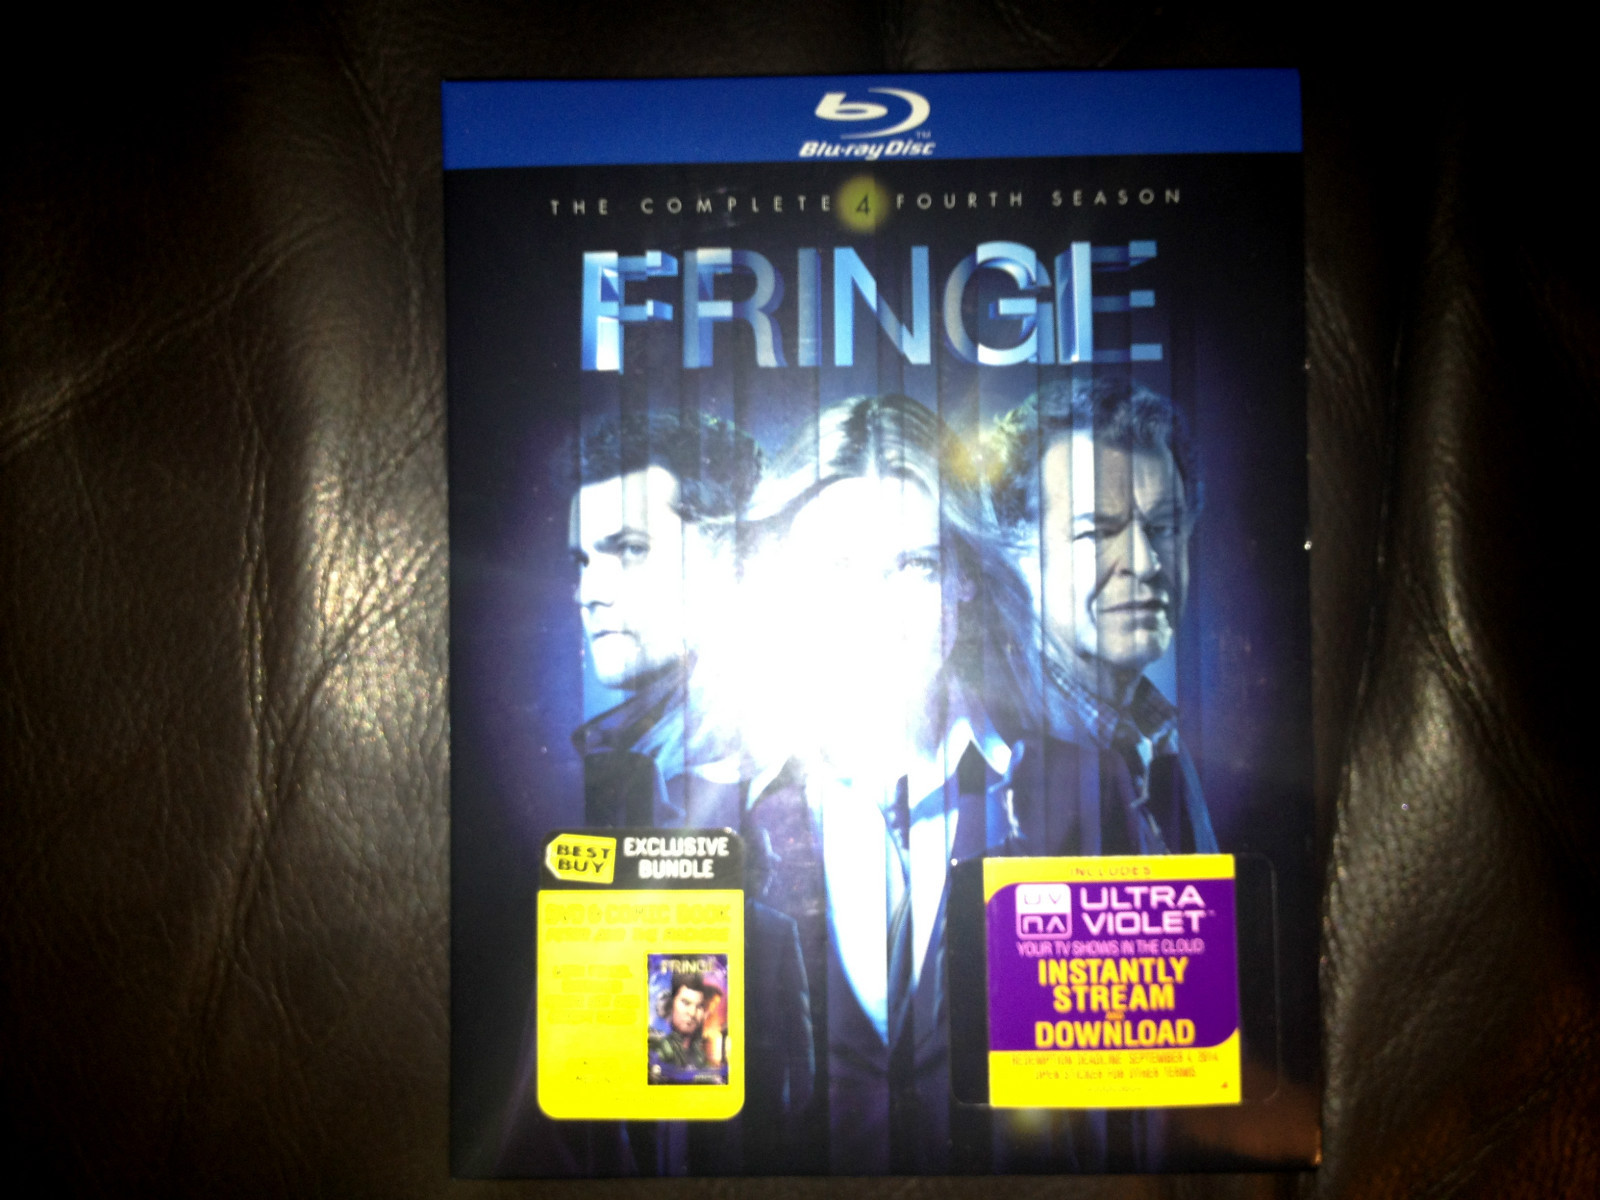 best buy fringe season 3Blu ray DVD Exclusives  Fringe  The Complete Fourth Season  Best whExbTKb